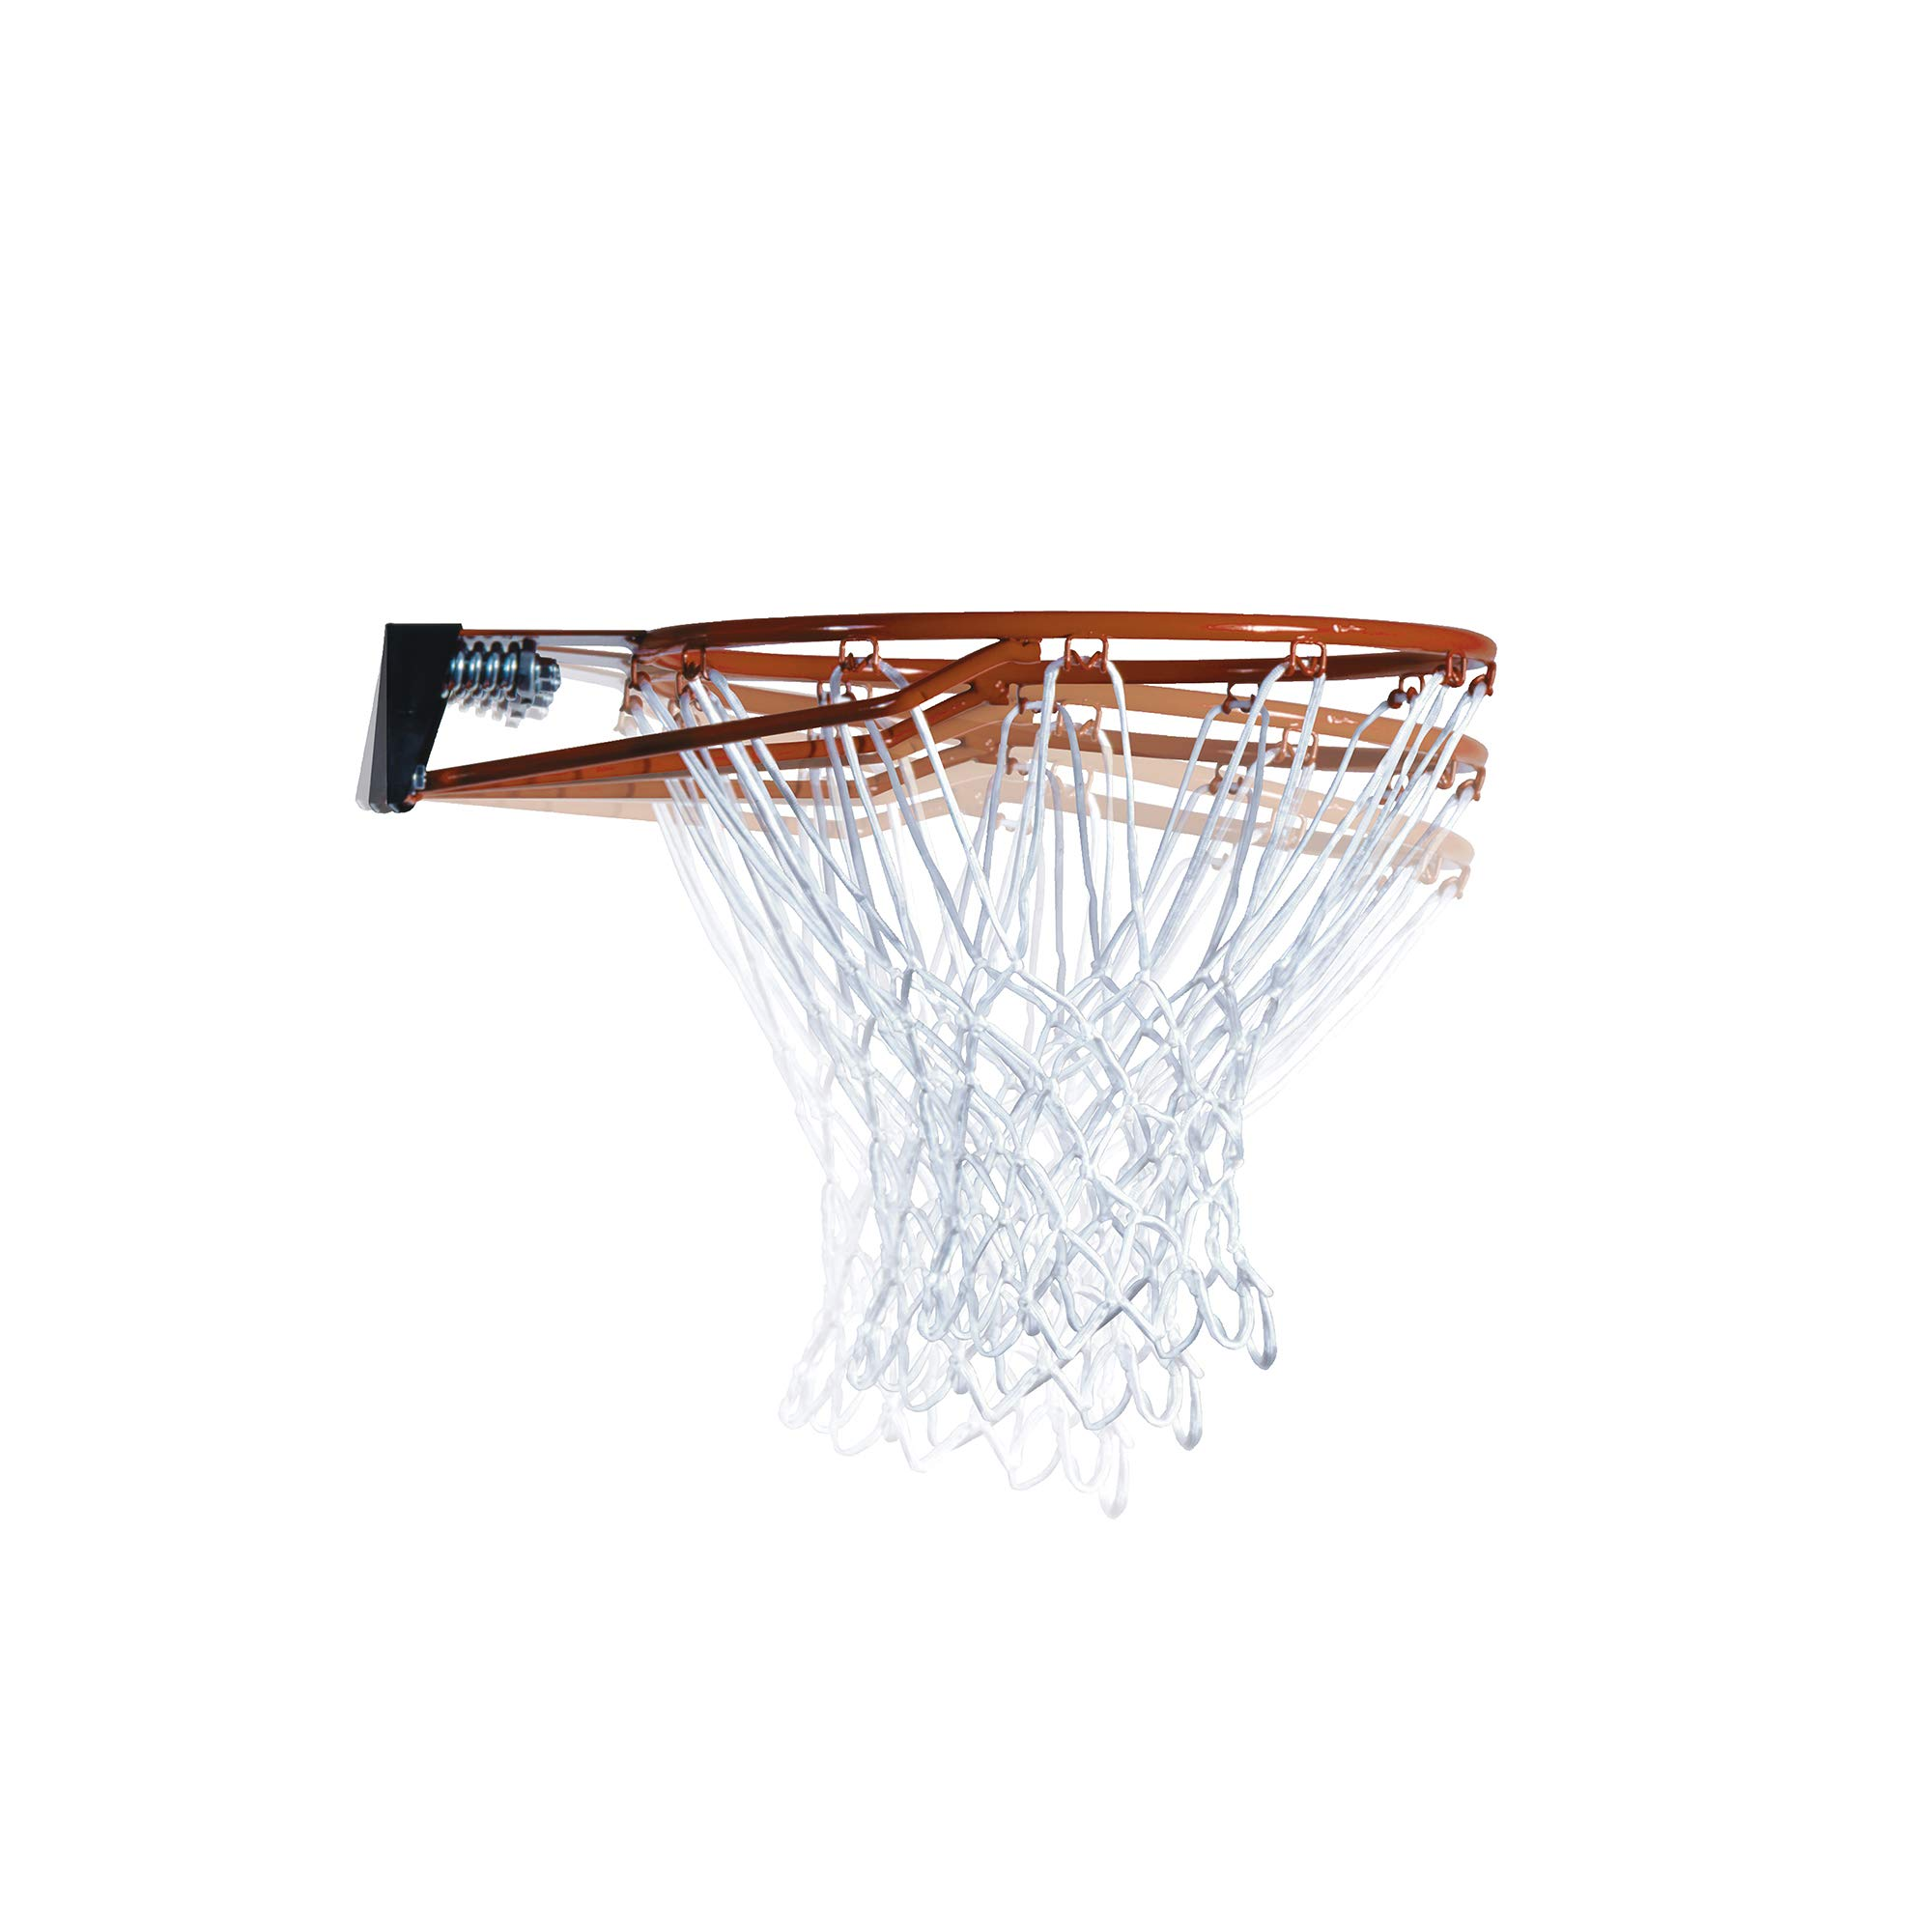 Lifetime Portable Basketball Hoop 90168 48-inch Polycarbonate Backboard System by Lifetime (Image #4)